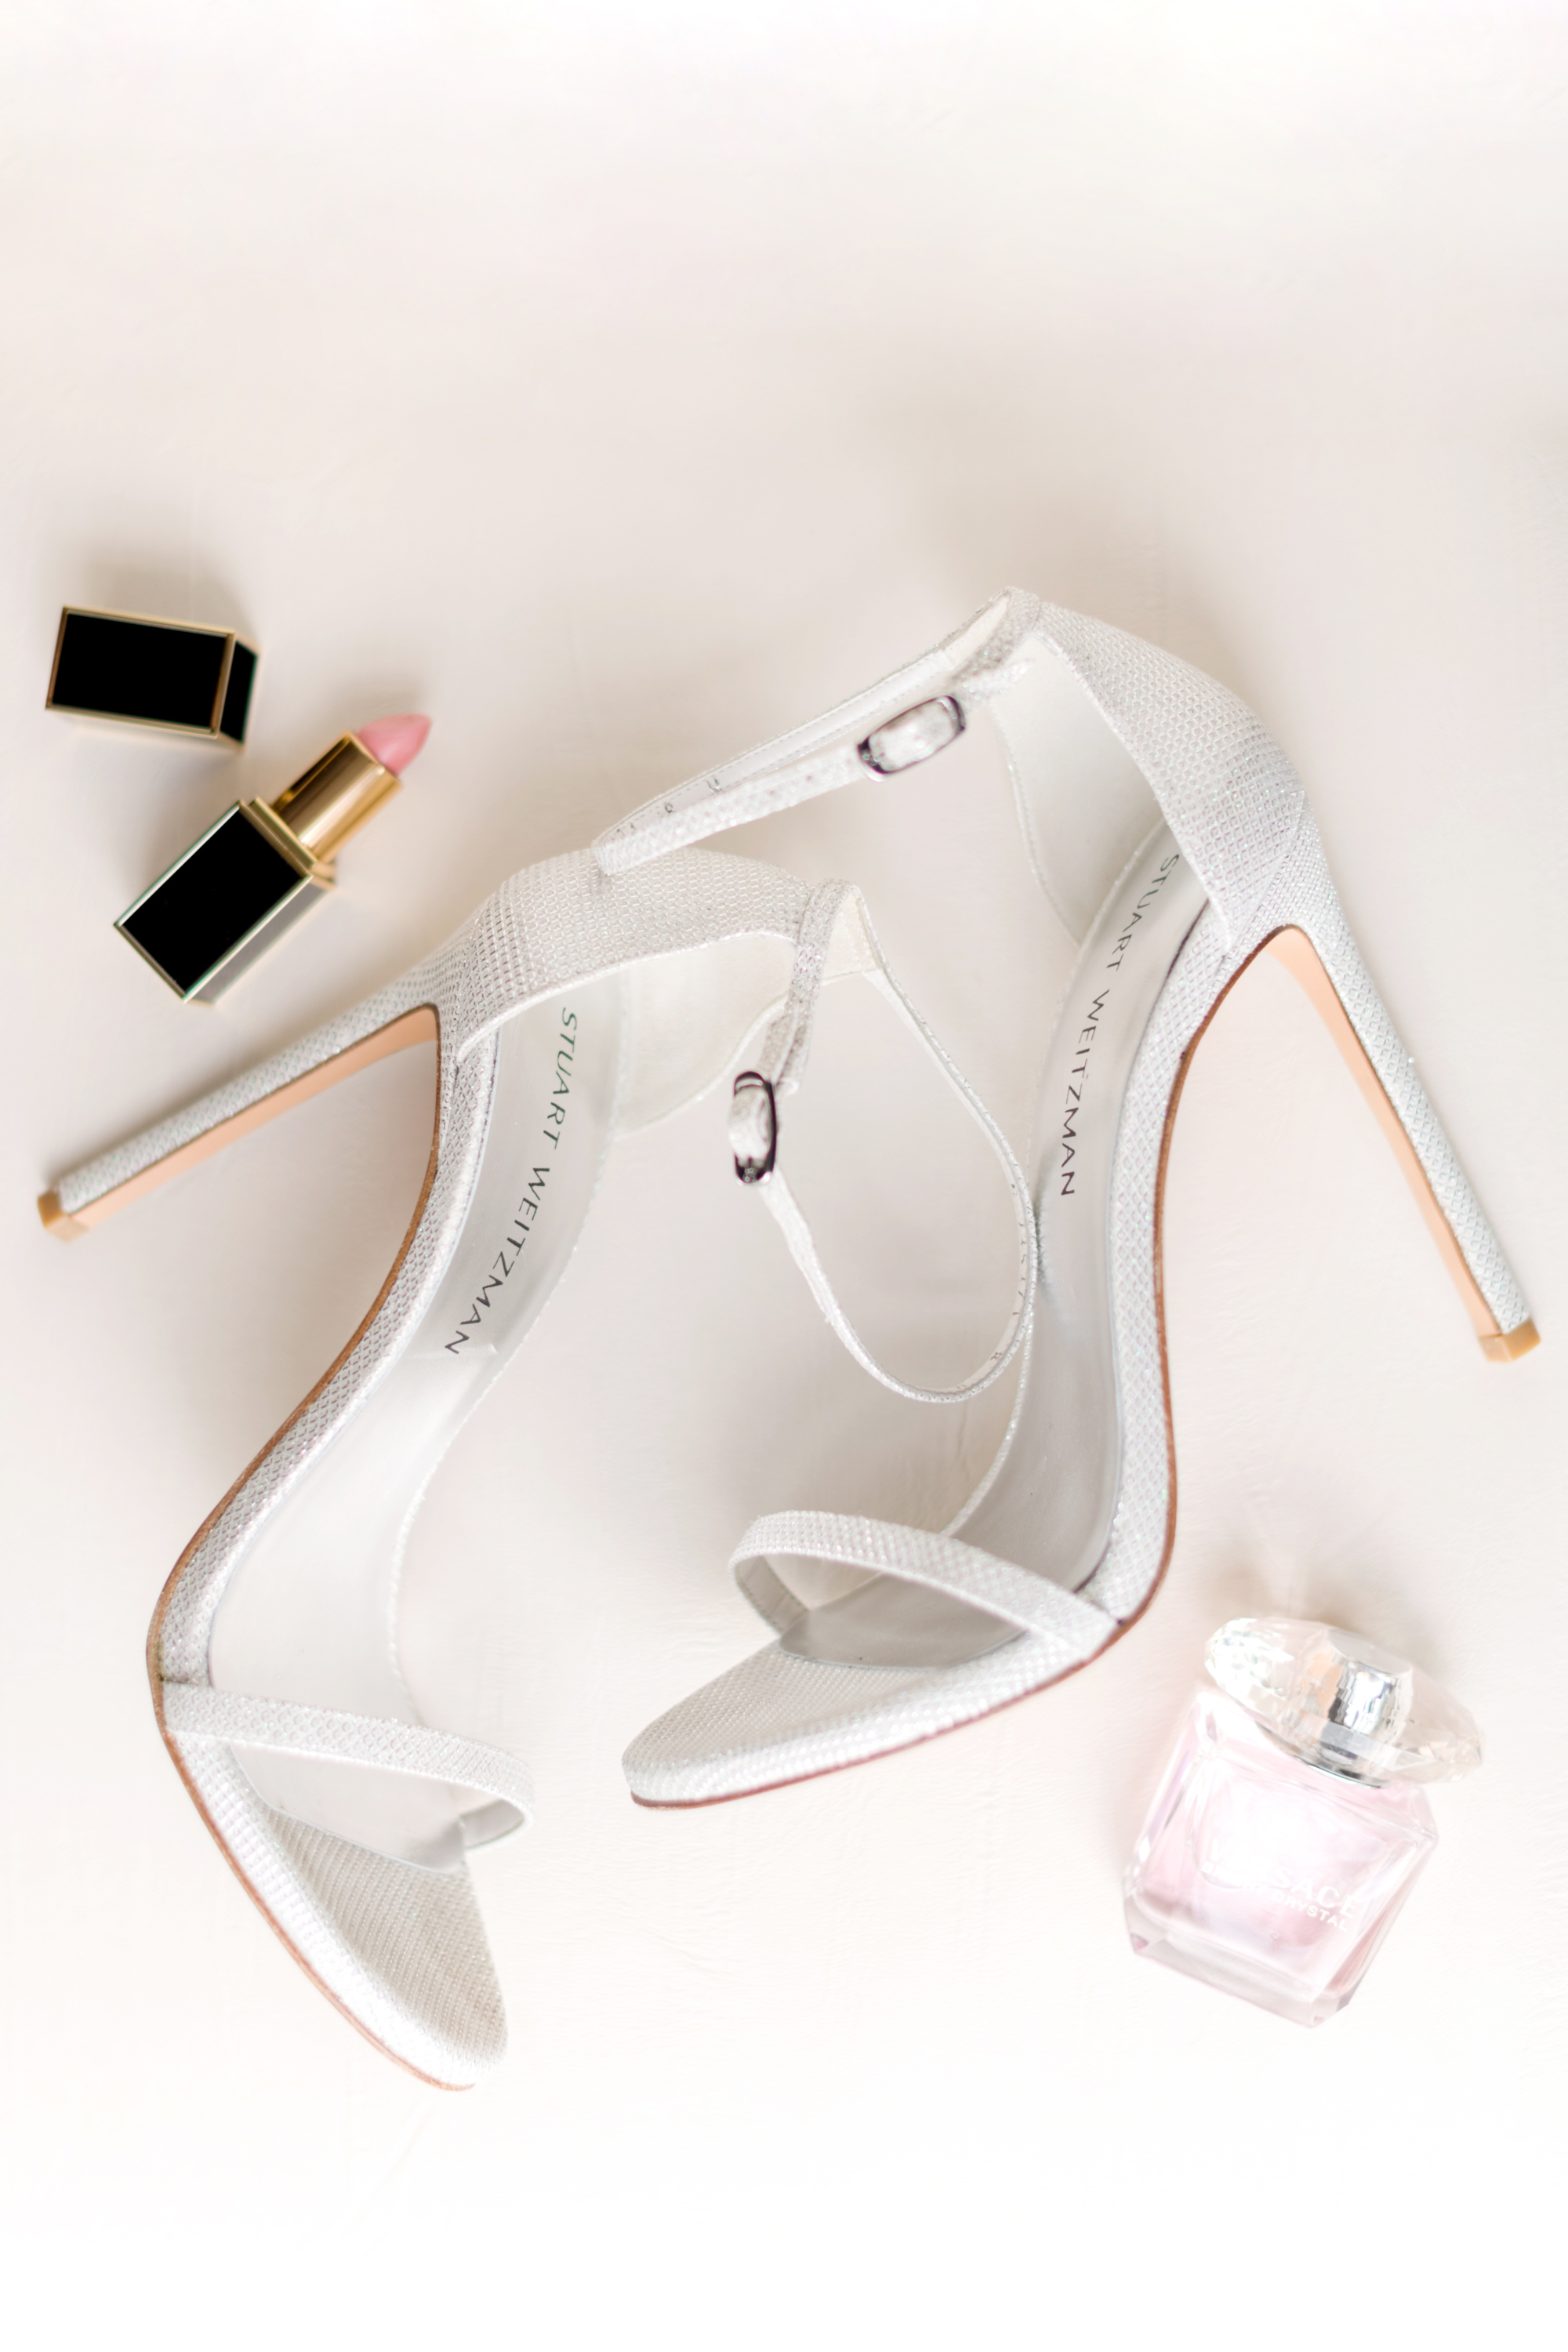 bridal details - Stuart Weitzman shoes, tom ford lipstick and versace perfume